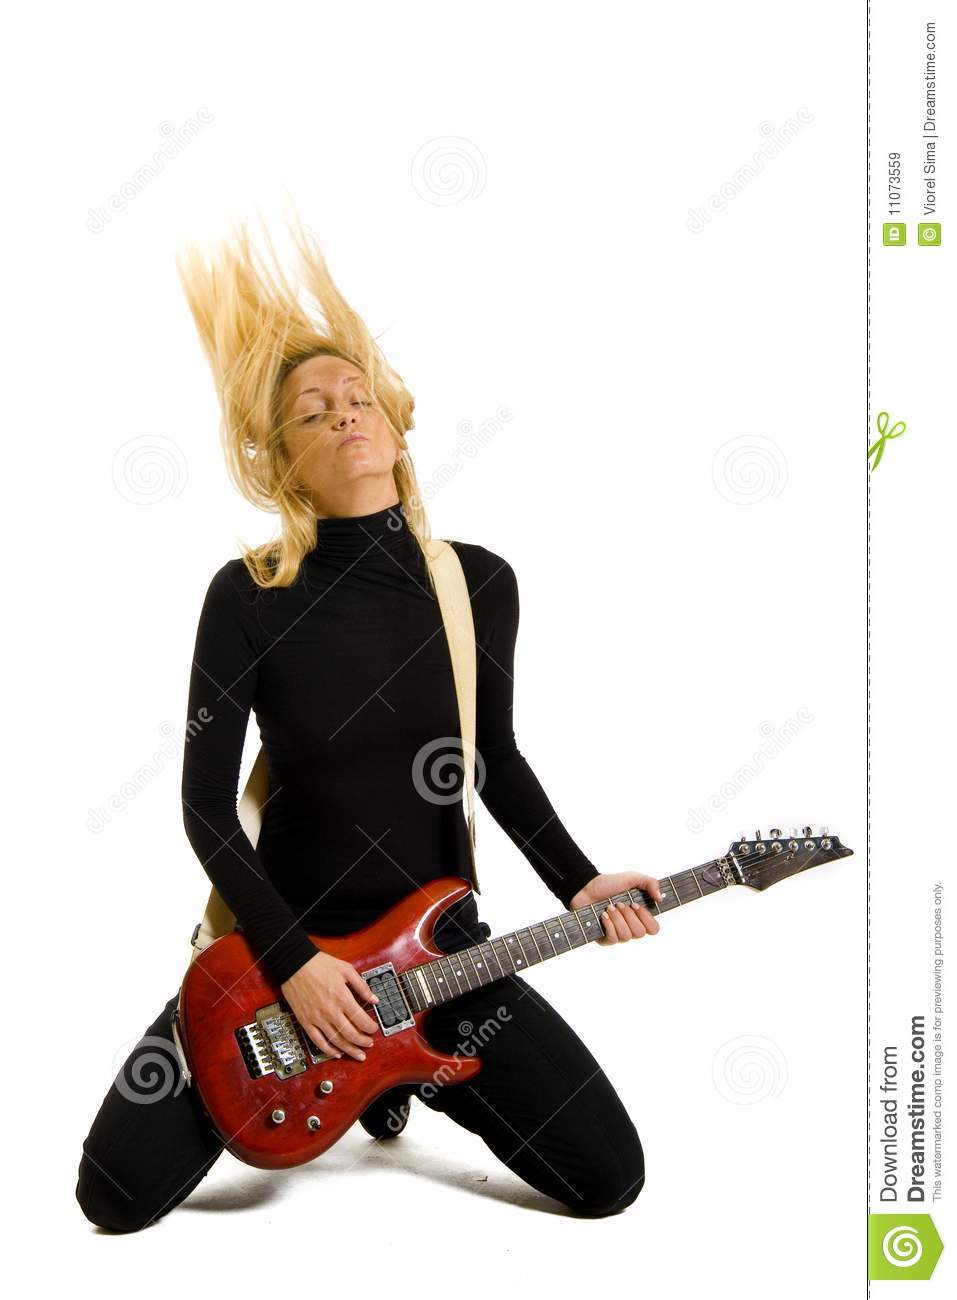 girl playing her electric guitar on knees royalty free stock images image 11073559. Black Bedroom Furniture Sets. Home Design Ideas